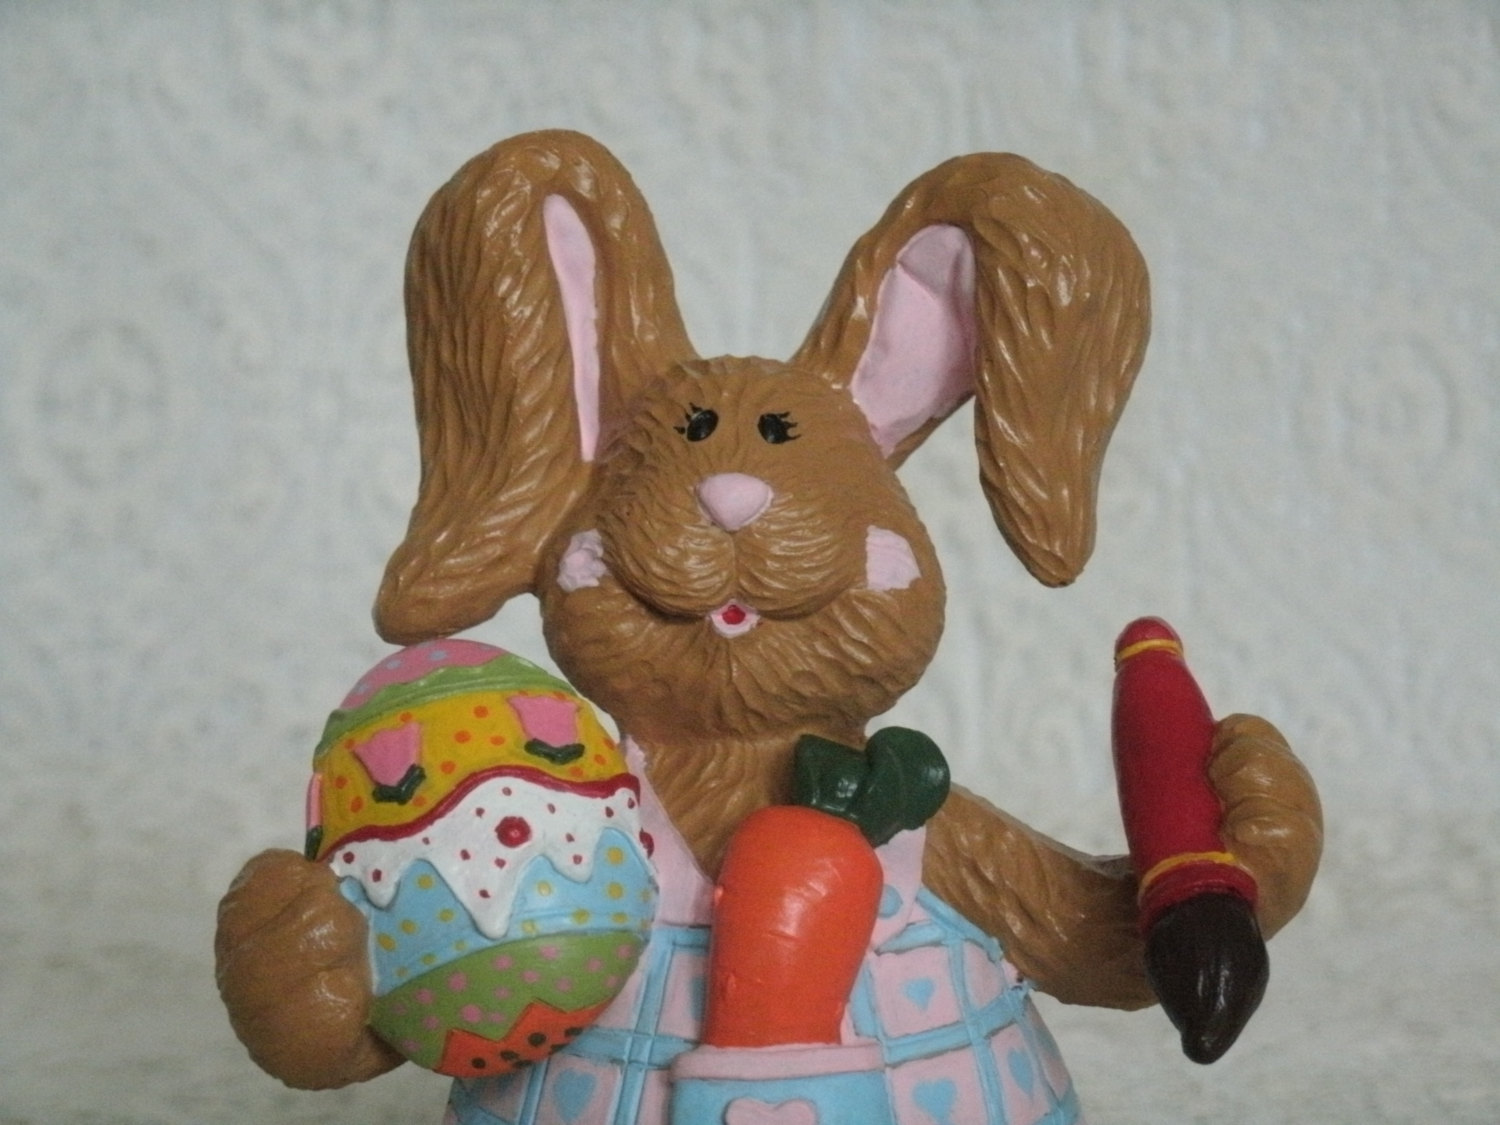 Easter bunny figurine decorative painting rabbit home for Rabbit decorations home